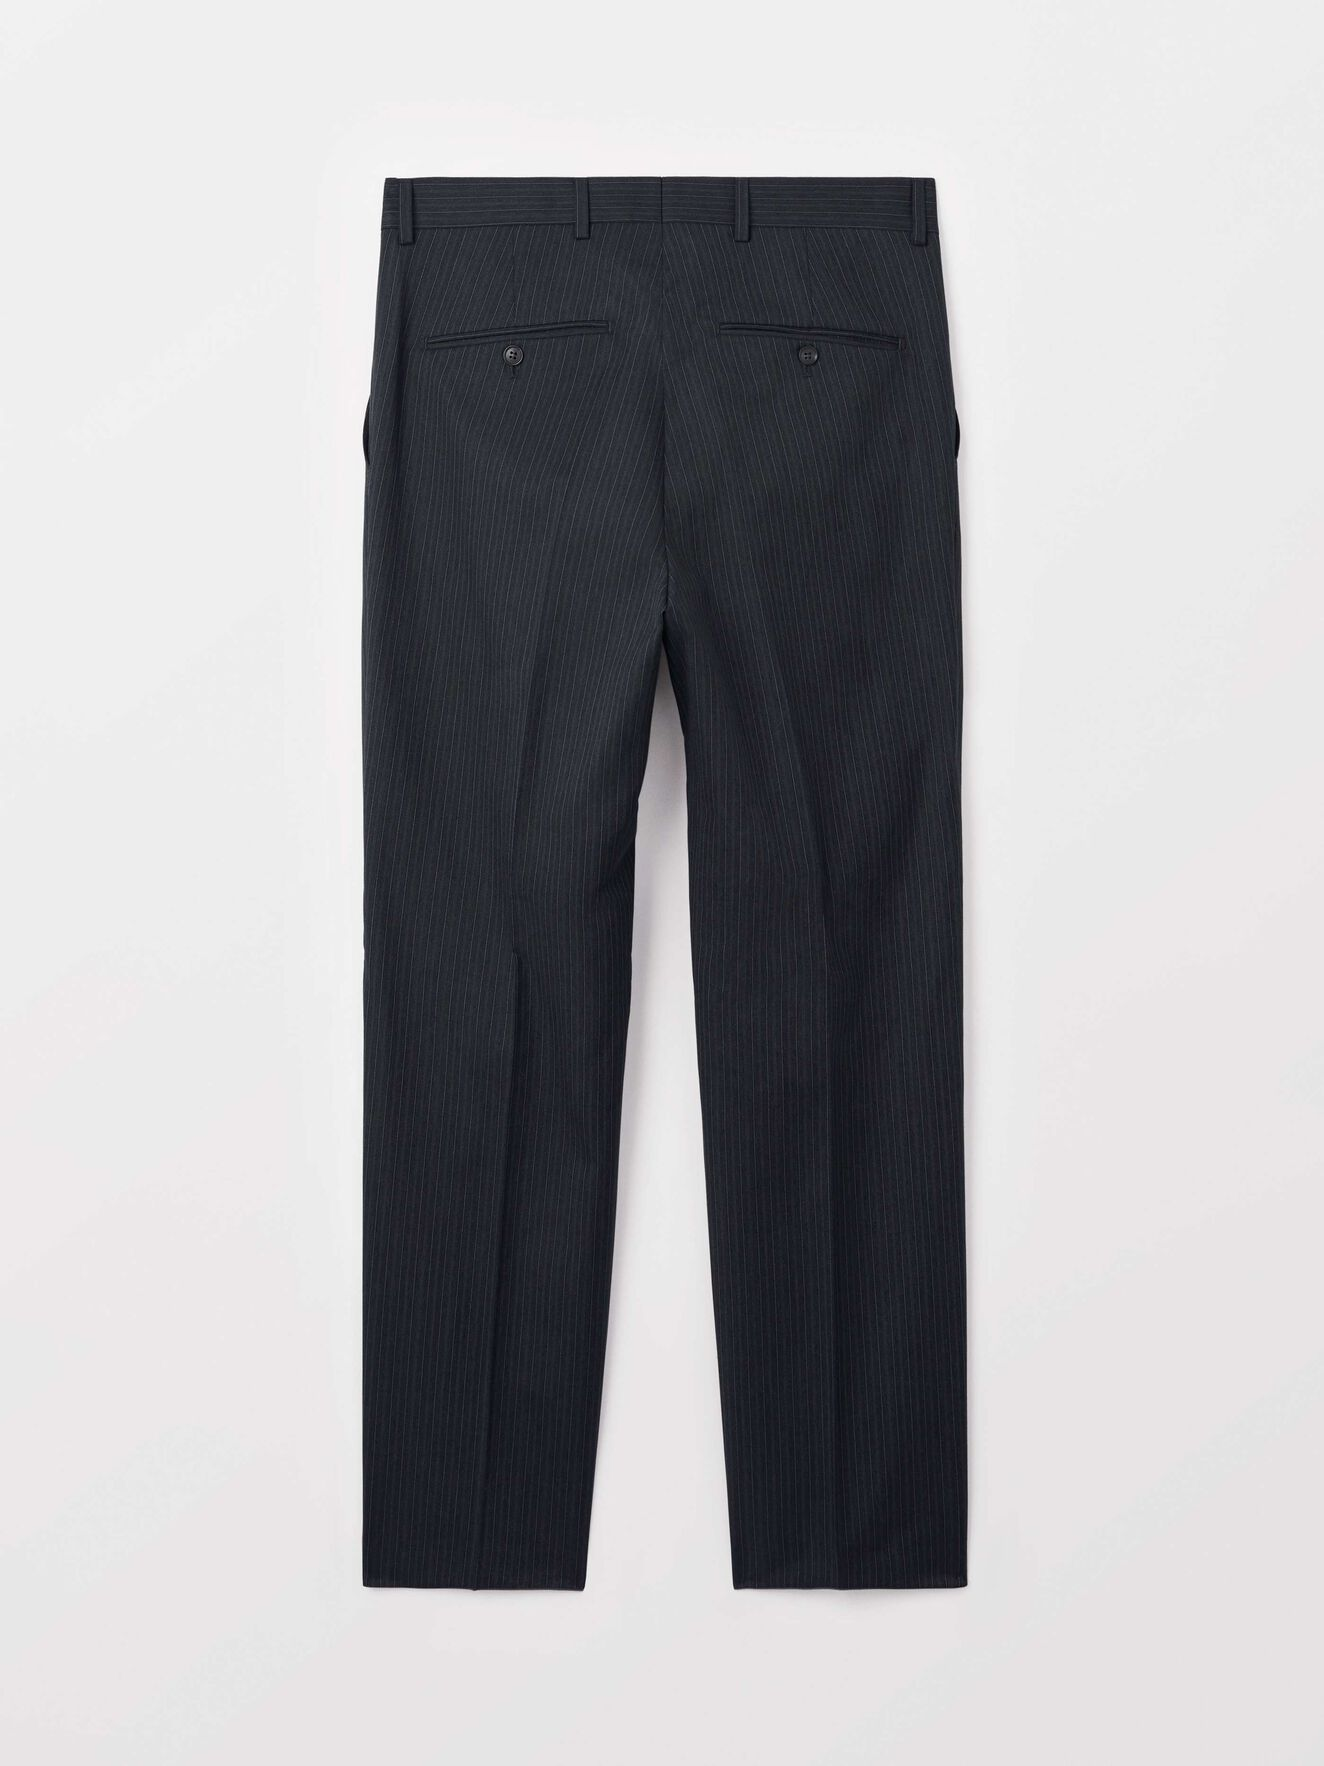 Trolosa Trousers in Dark grey Mel from Tiger of Sweden